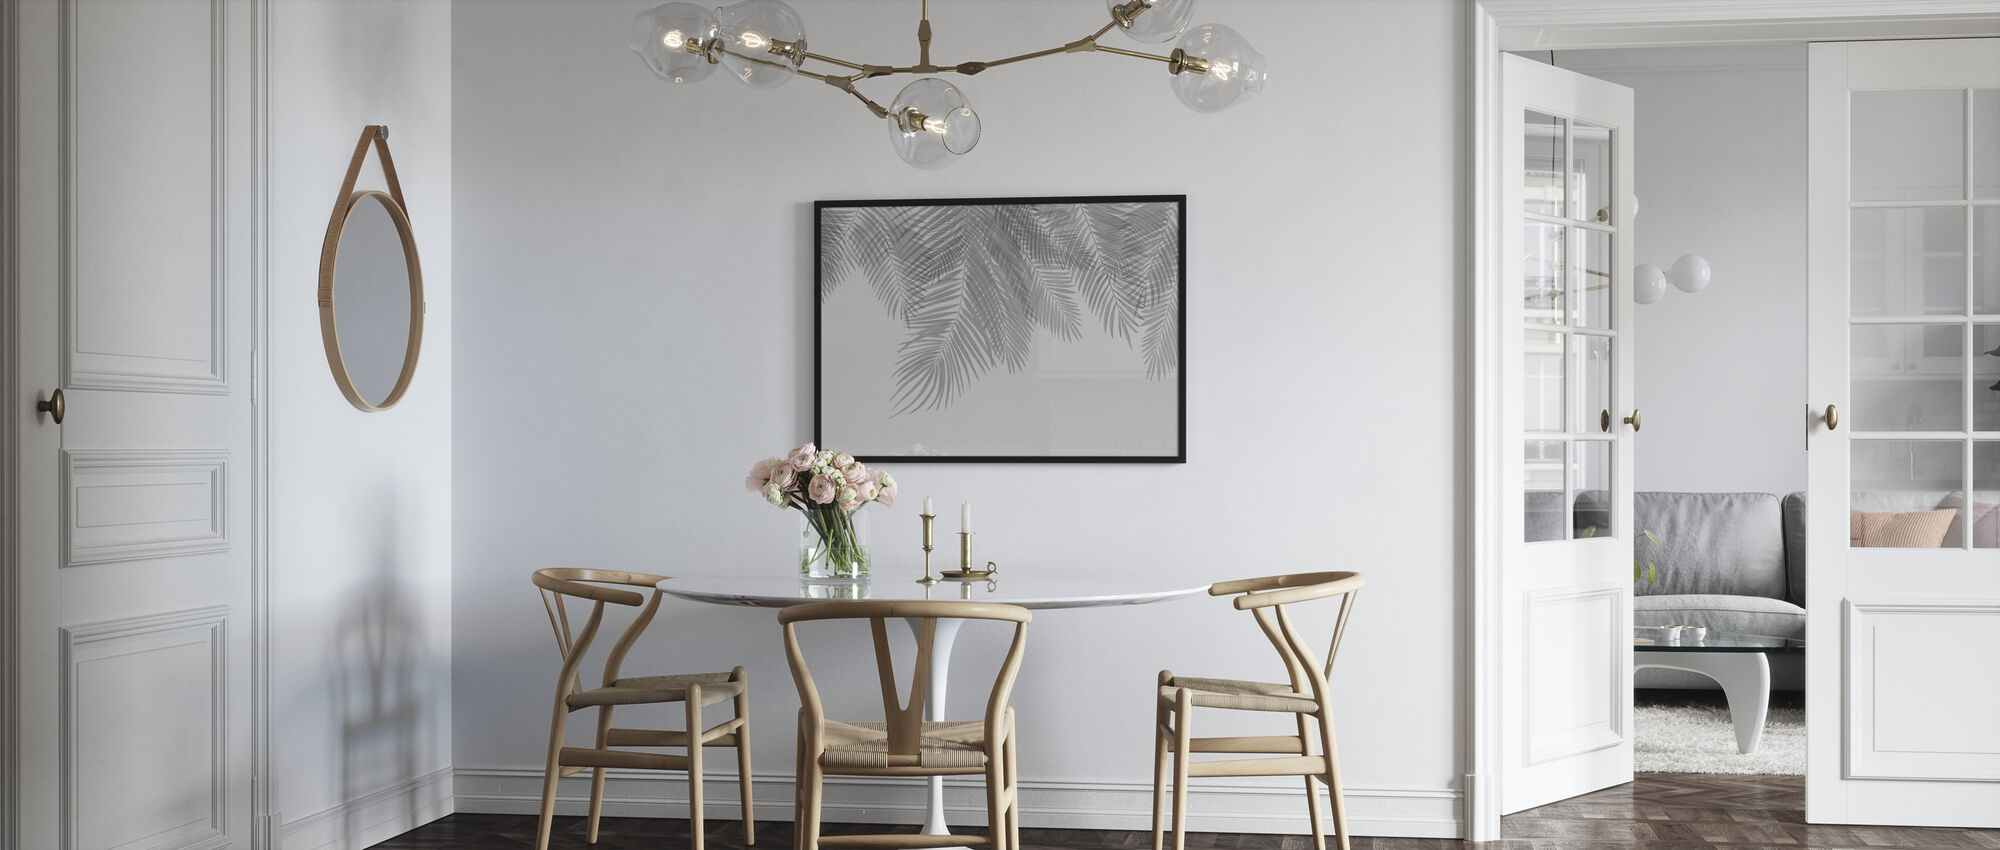 Hanging Palm Leaves - Gray - Poster - Kitchen